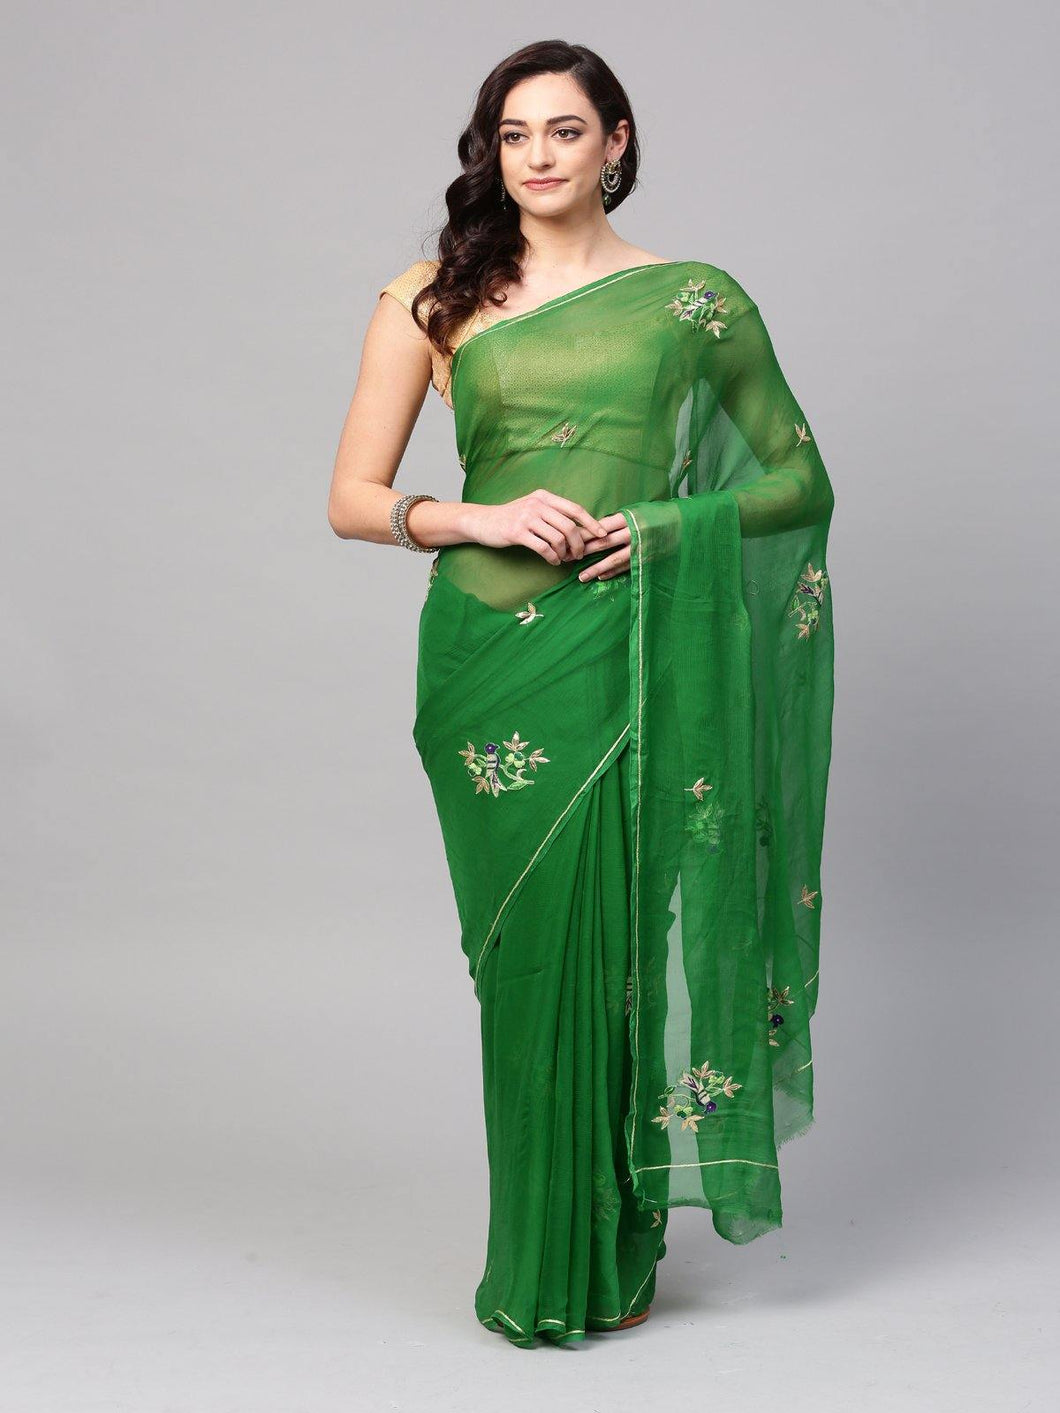 Green Pure Chiffon Hand Embroidered Saree - The Wedding Brigade